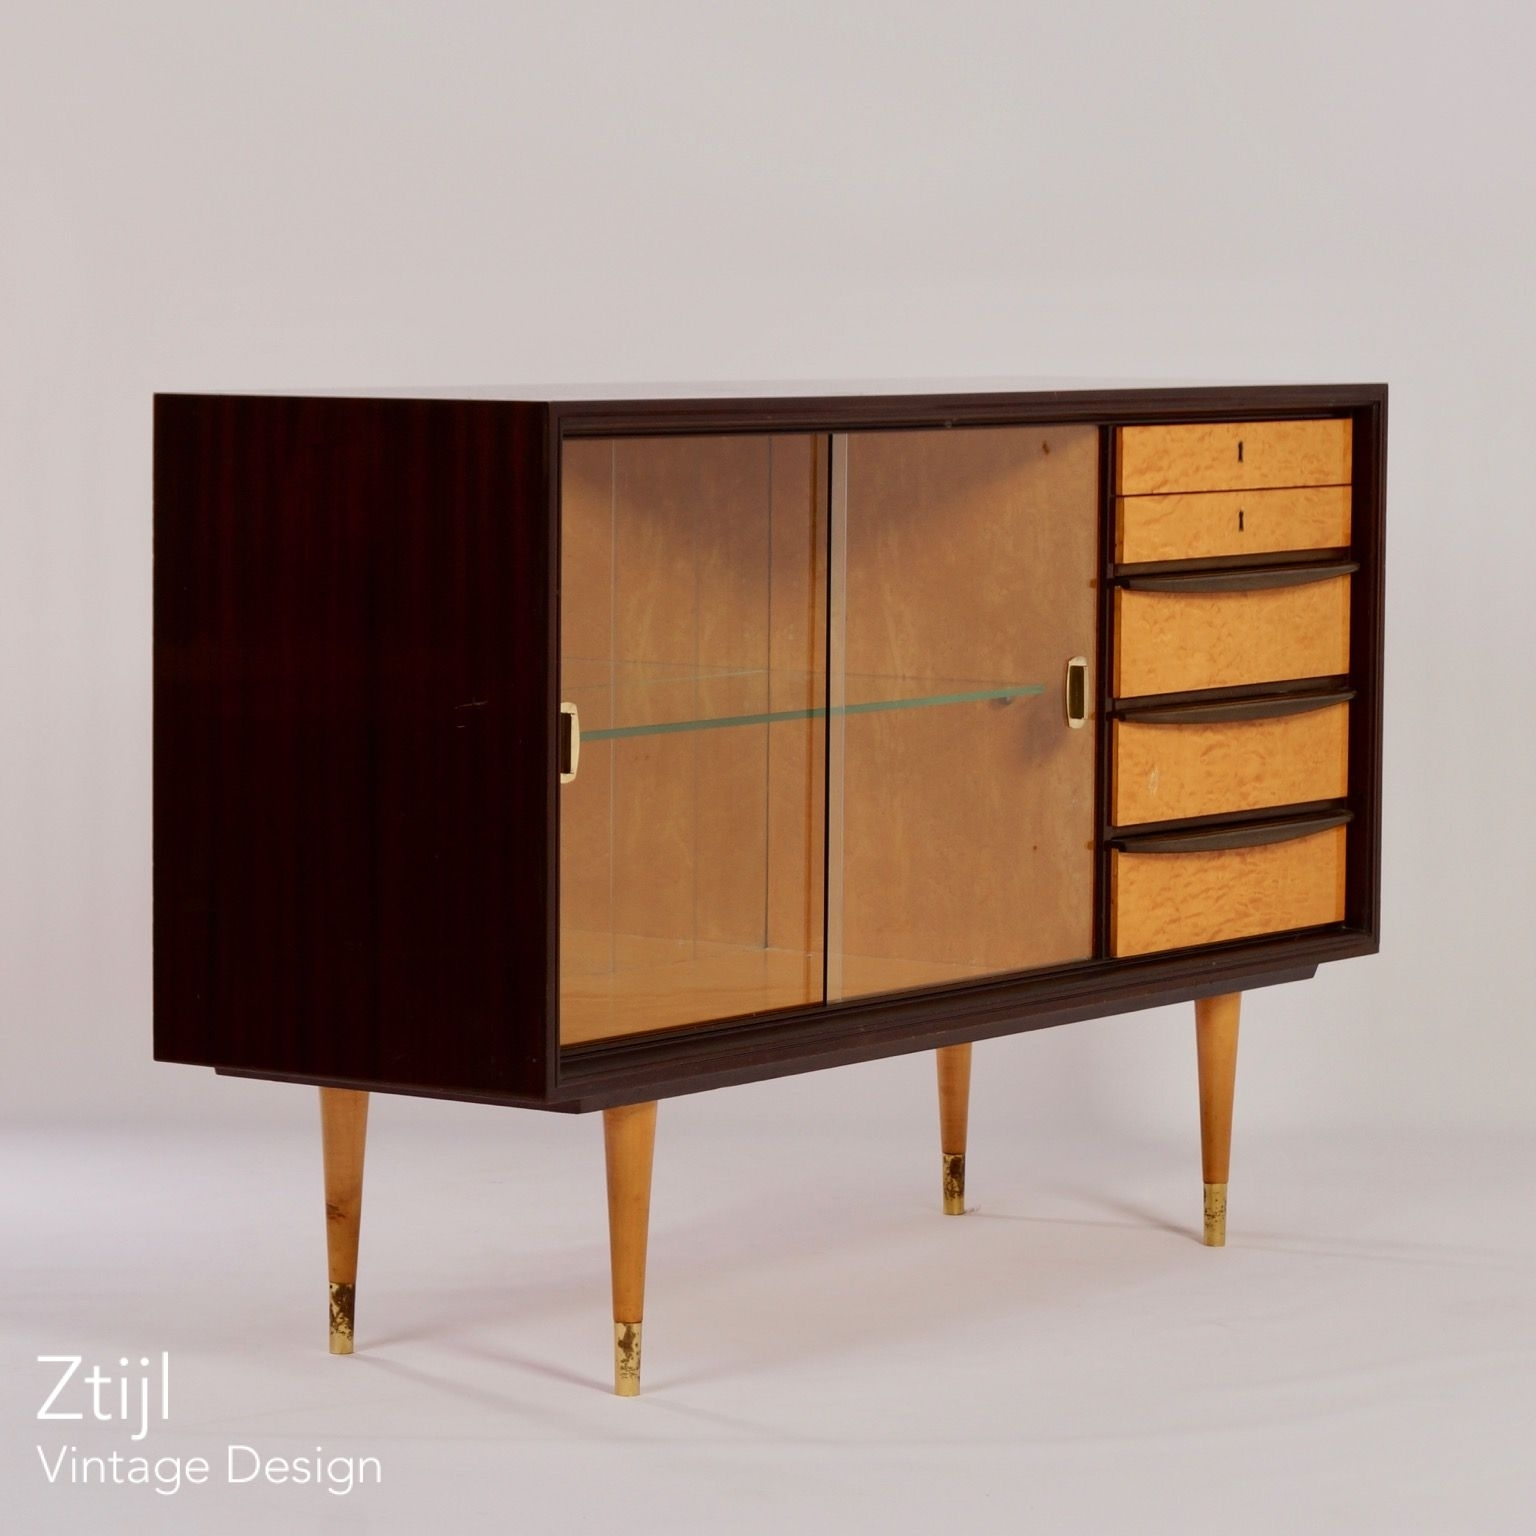 Mahogany Sideboard With Showcase And Brass Details, 1960S - Vintage inside Aged Brass Sideboards (Image 20 of 30)